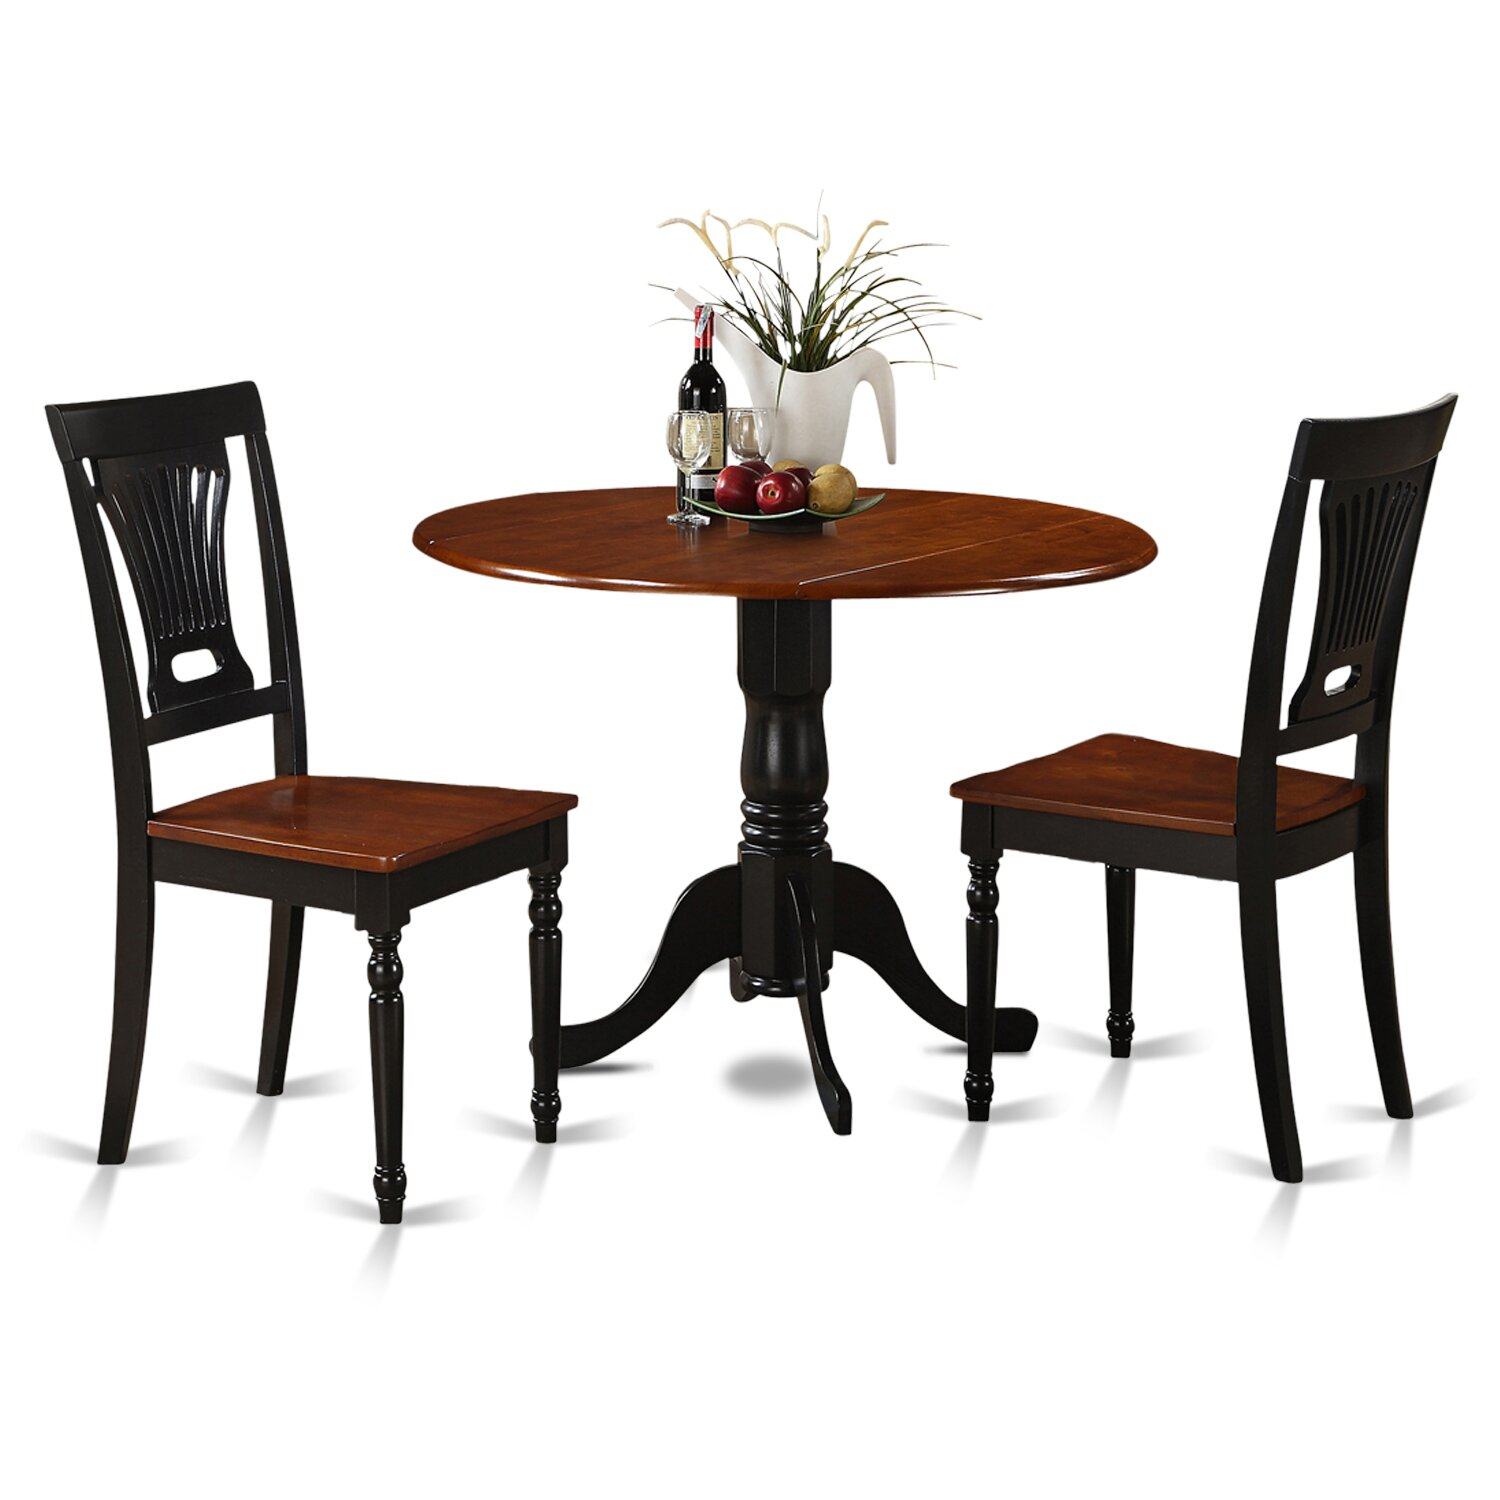 Wooden importers dublin 3 piece dining set reviews wayfair for Small dining set with bench